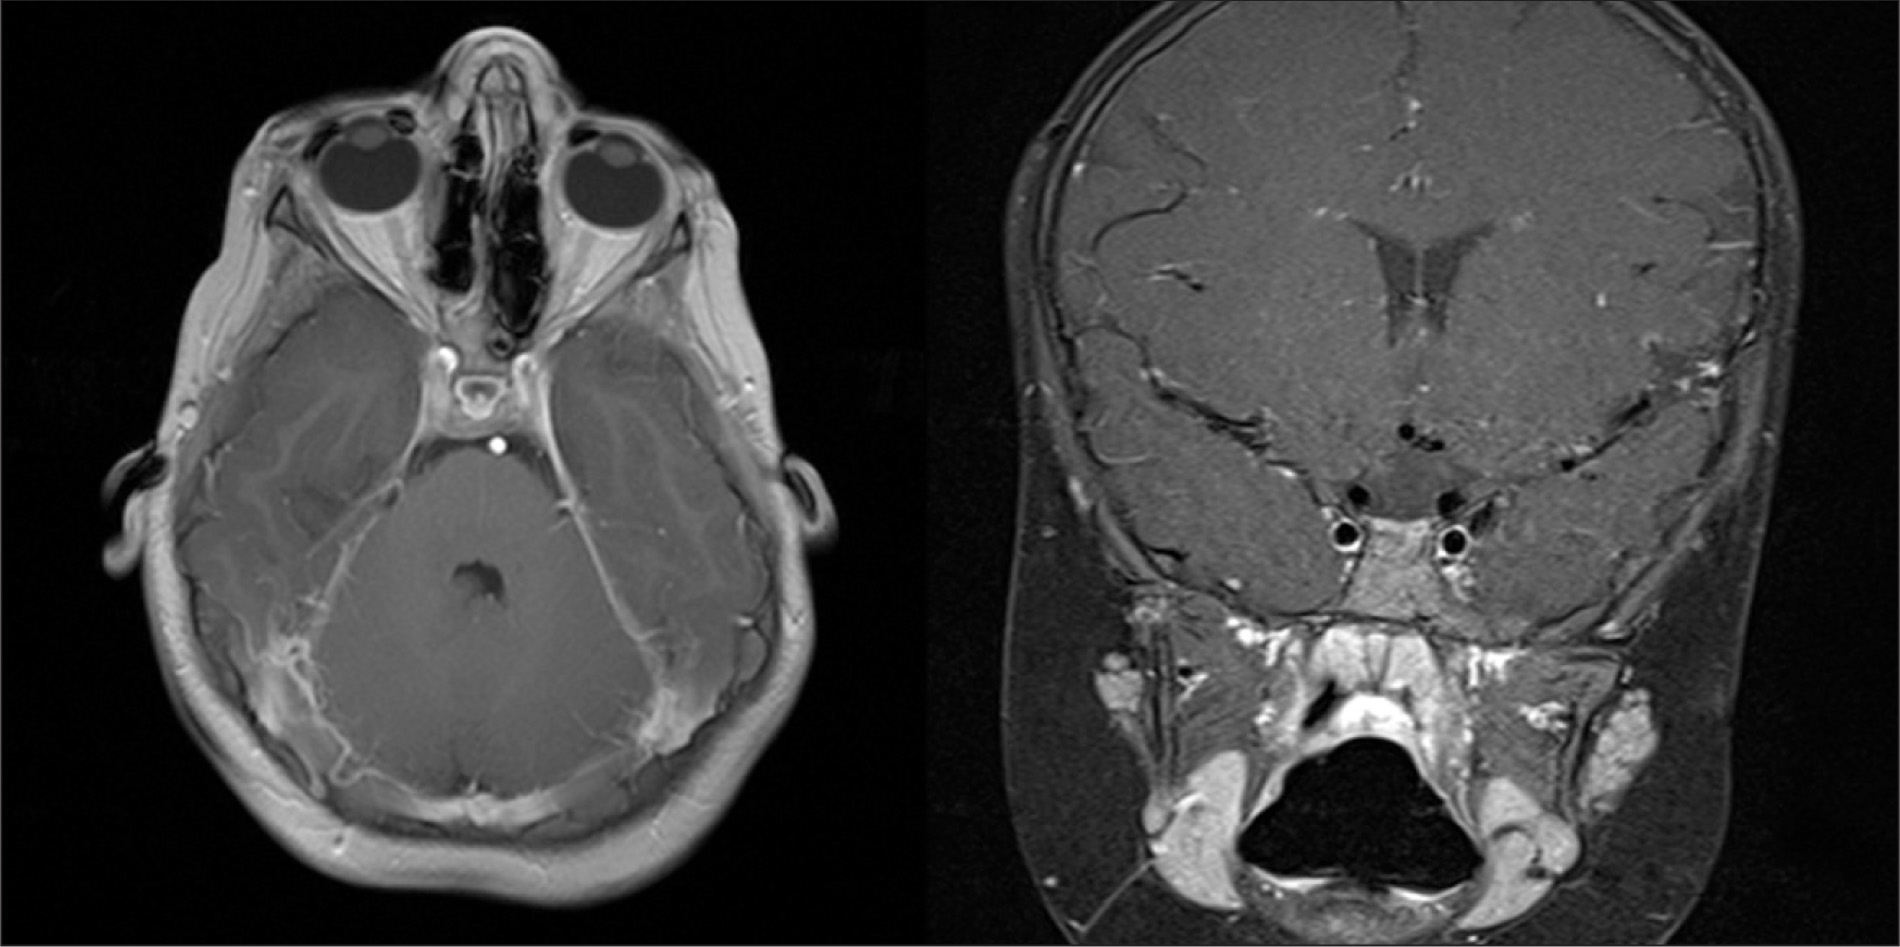 Magnetic Resonance Imaging of the Brain, Including Axial and Coronal Images, Showing Mild Atrophy of the Optic Nerves and Chiasm.